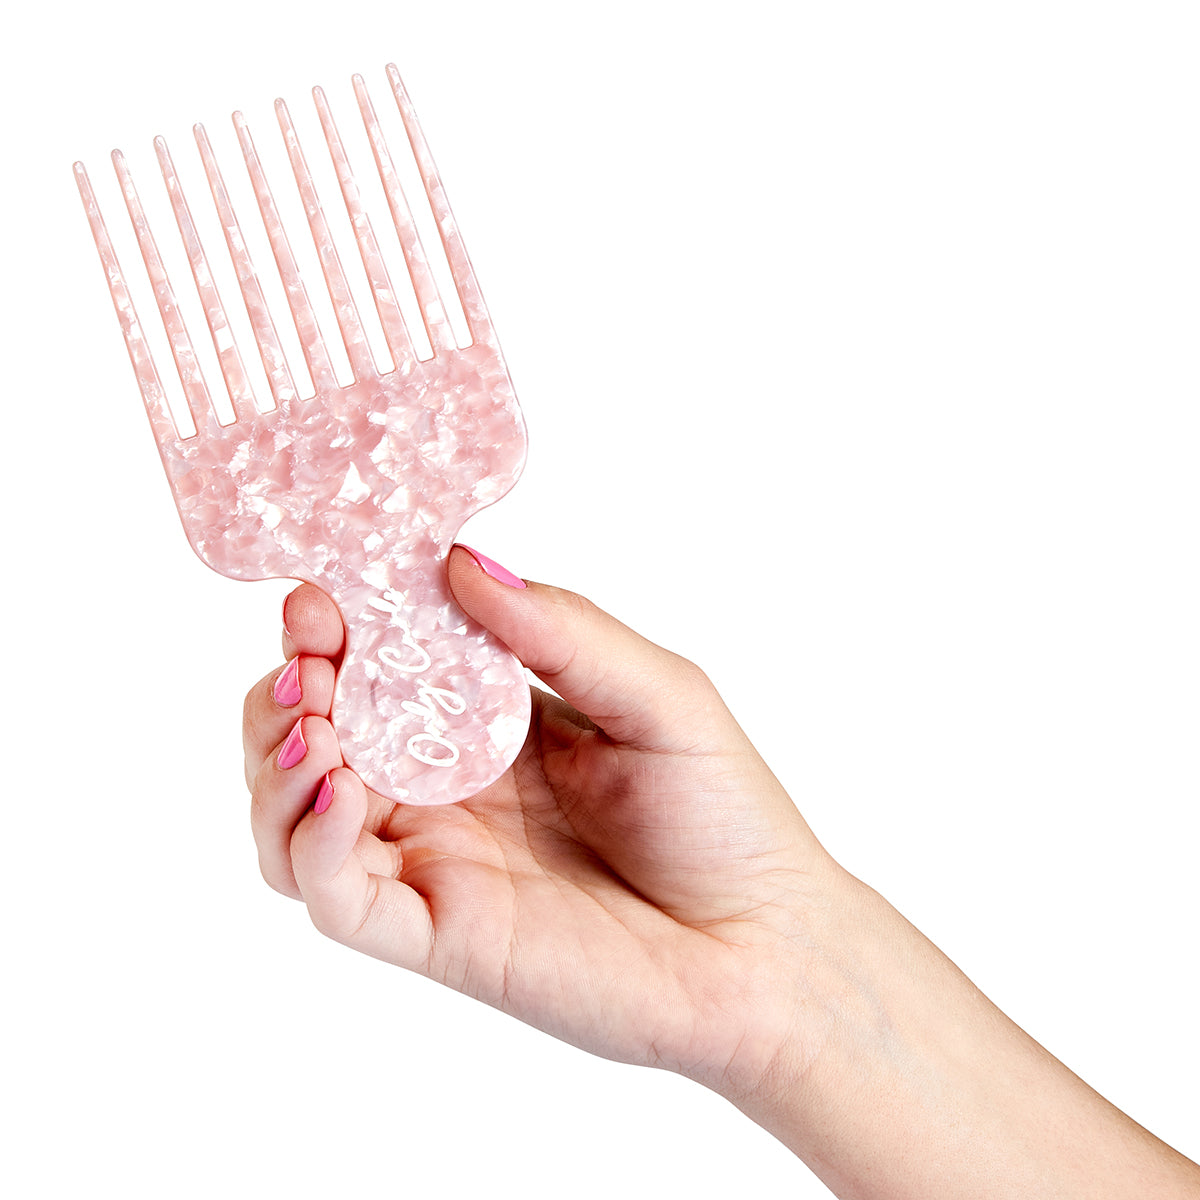 Only Curls Pink Shimmer Afro Comb - Only Curls